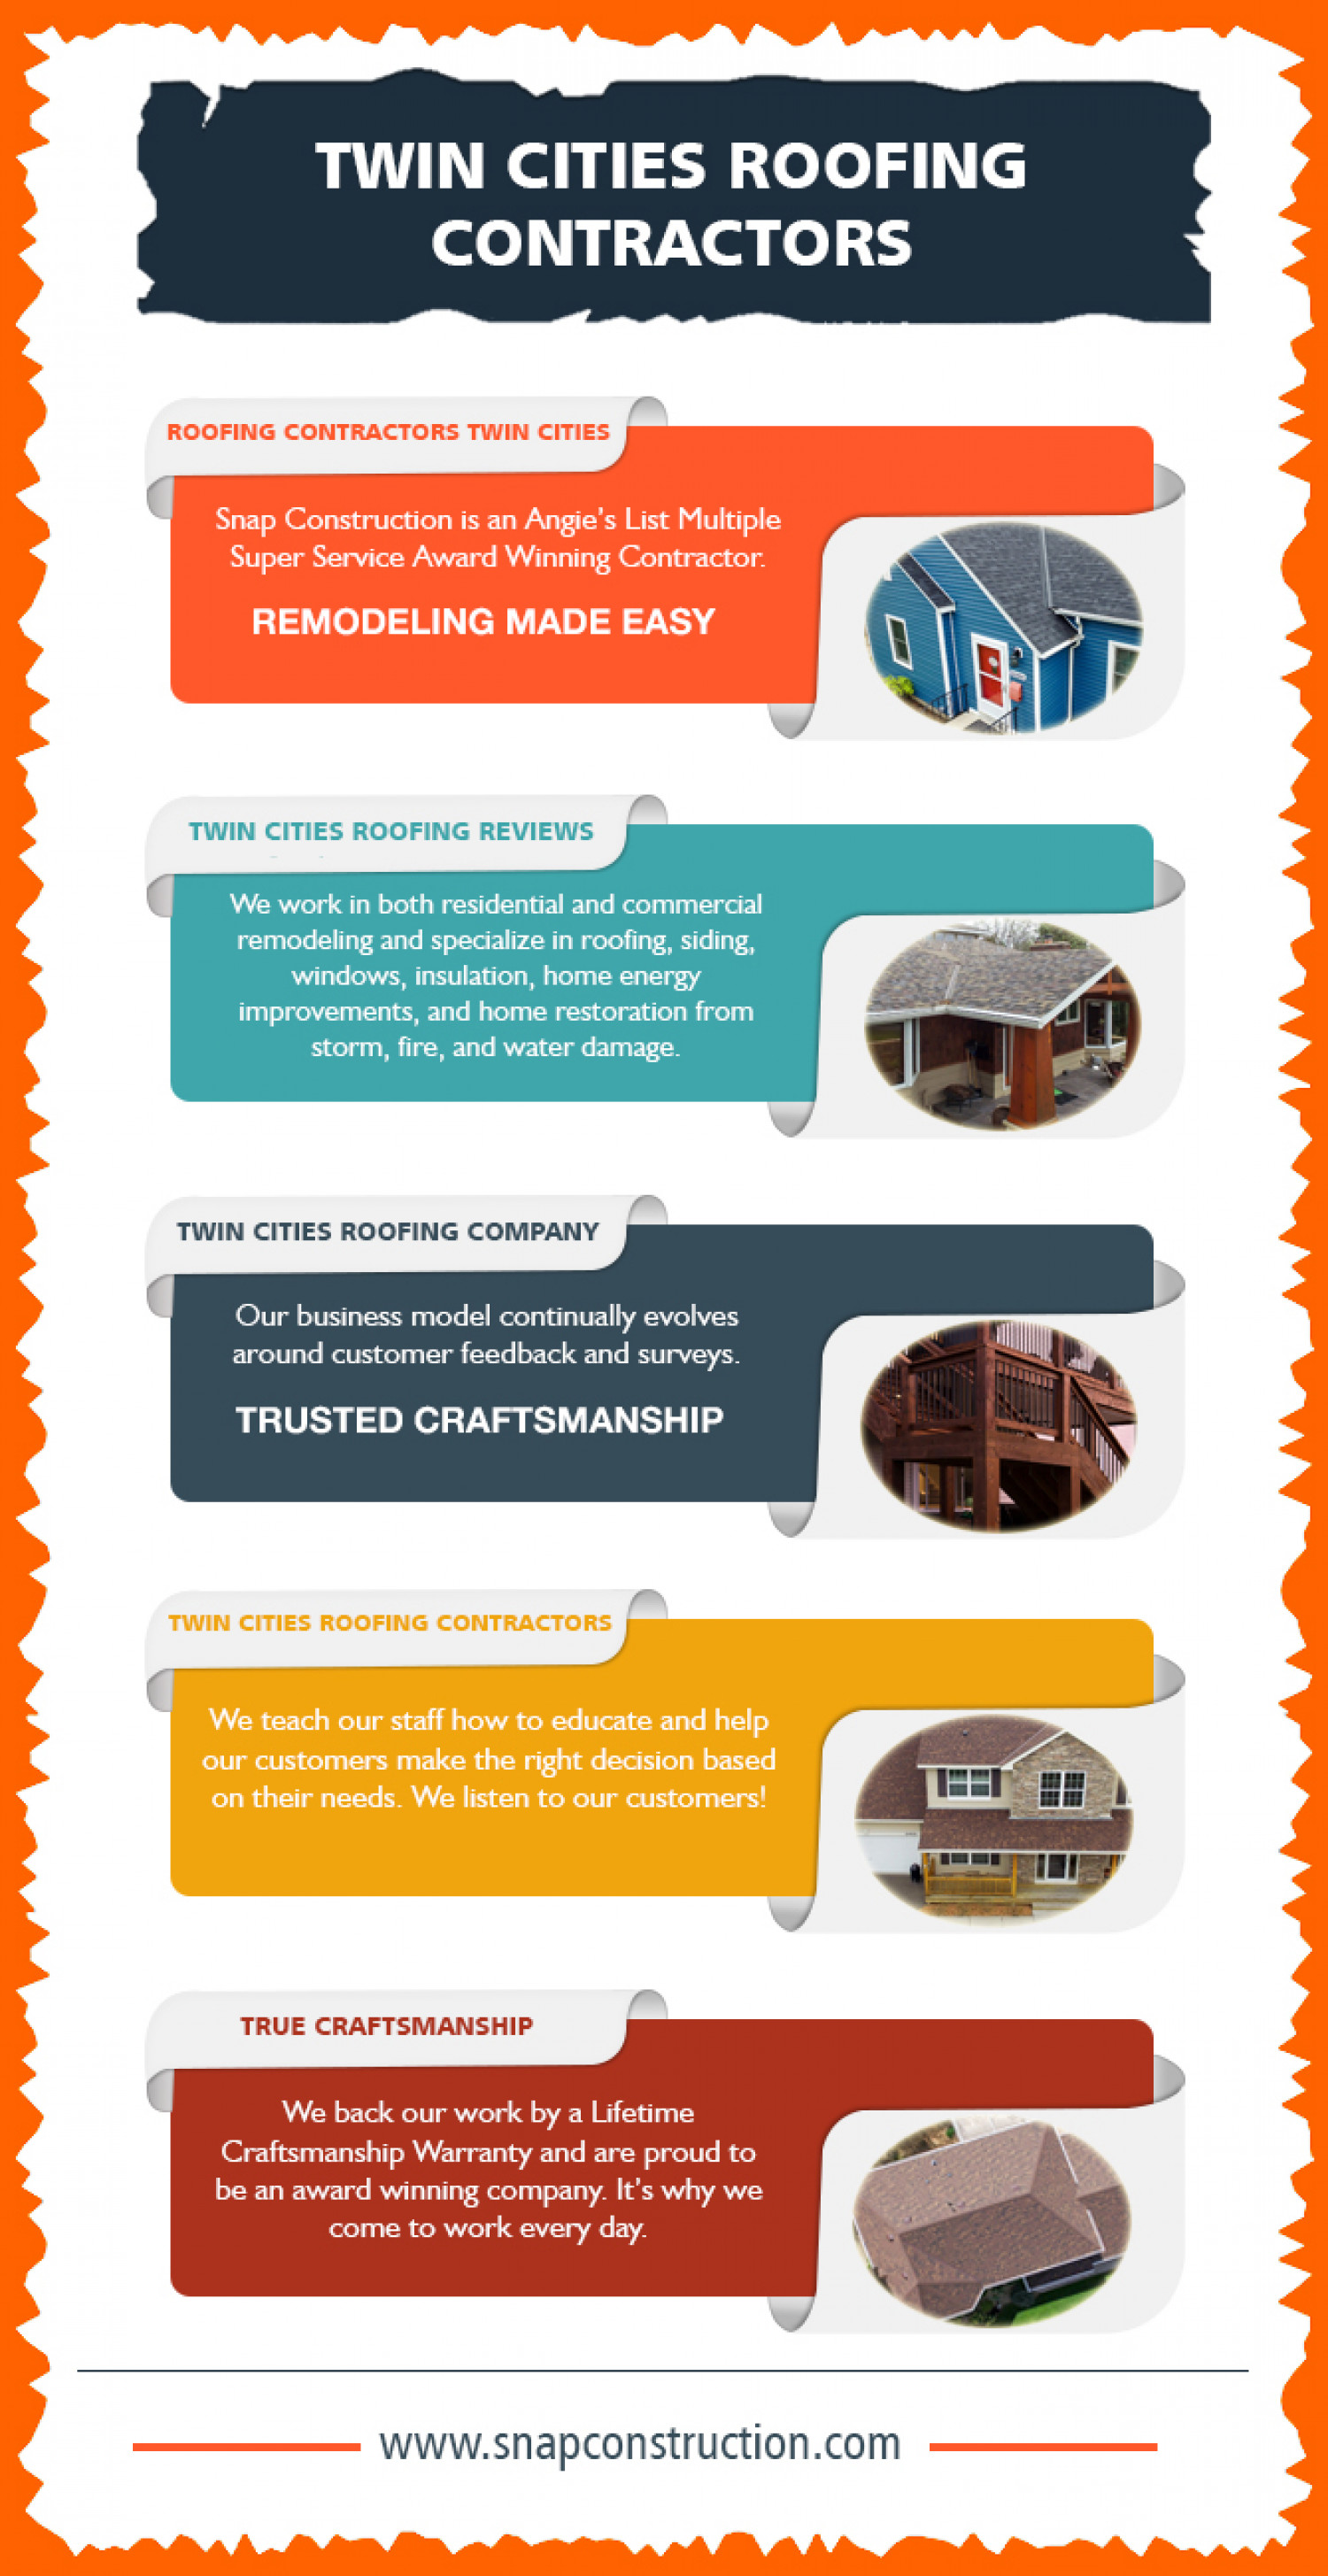 Twin Cities Roofing Contractors Infographic